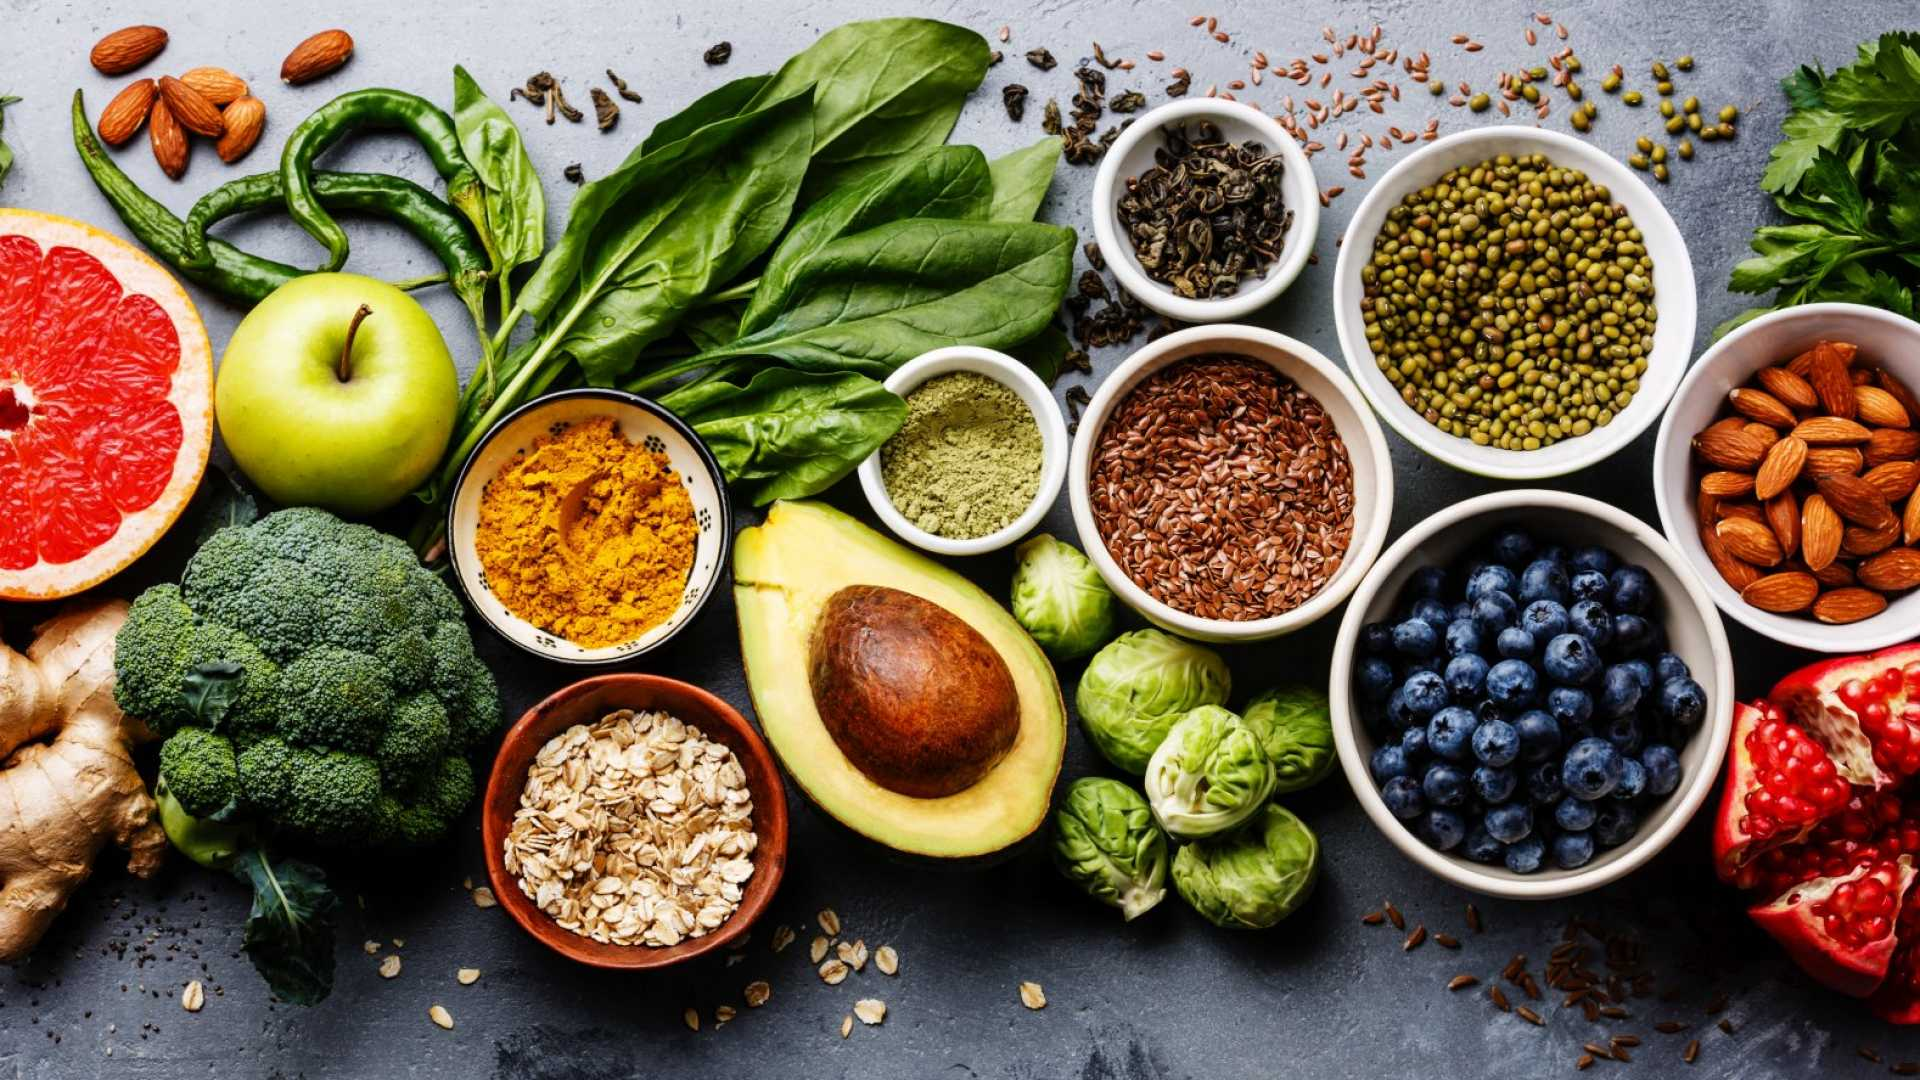 Want to Lift Your Spirits? These Are 5 of the Most Effective Foods for Getting You There